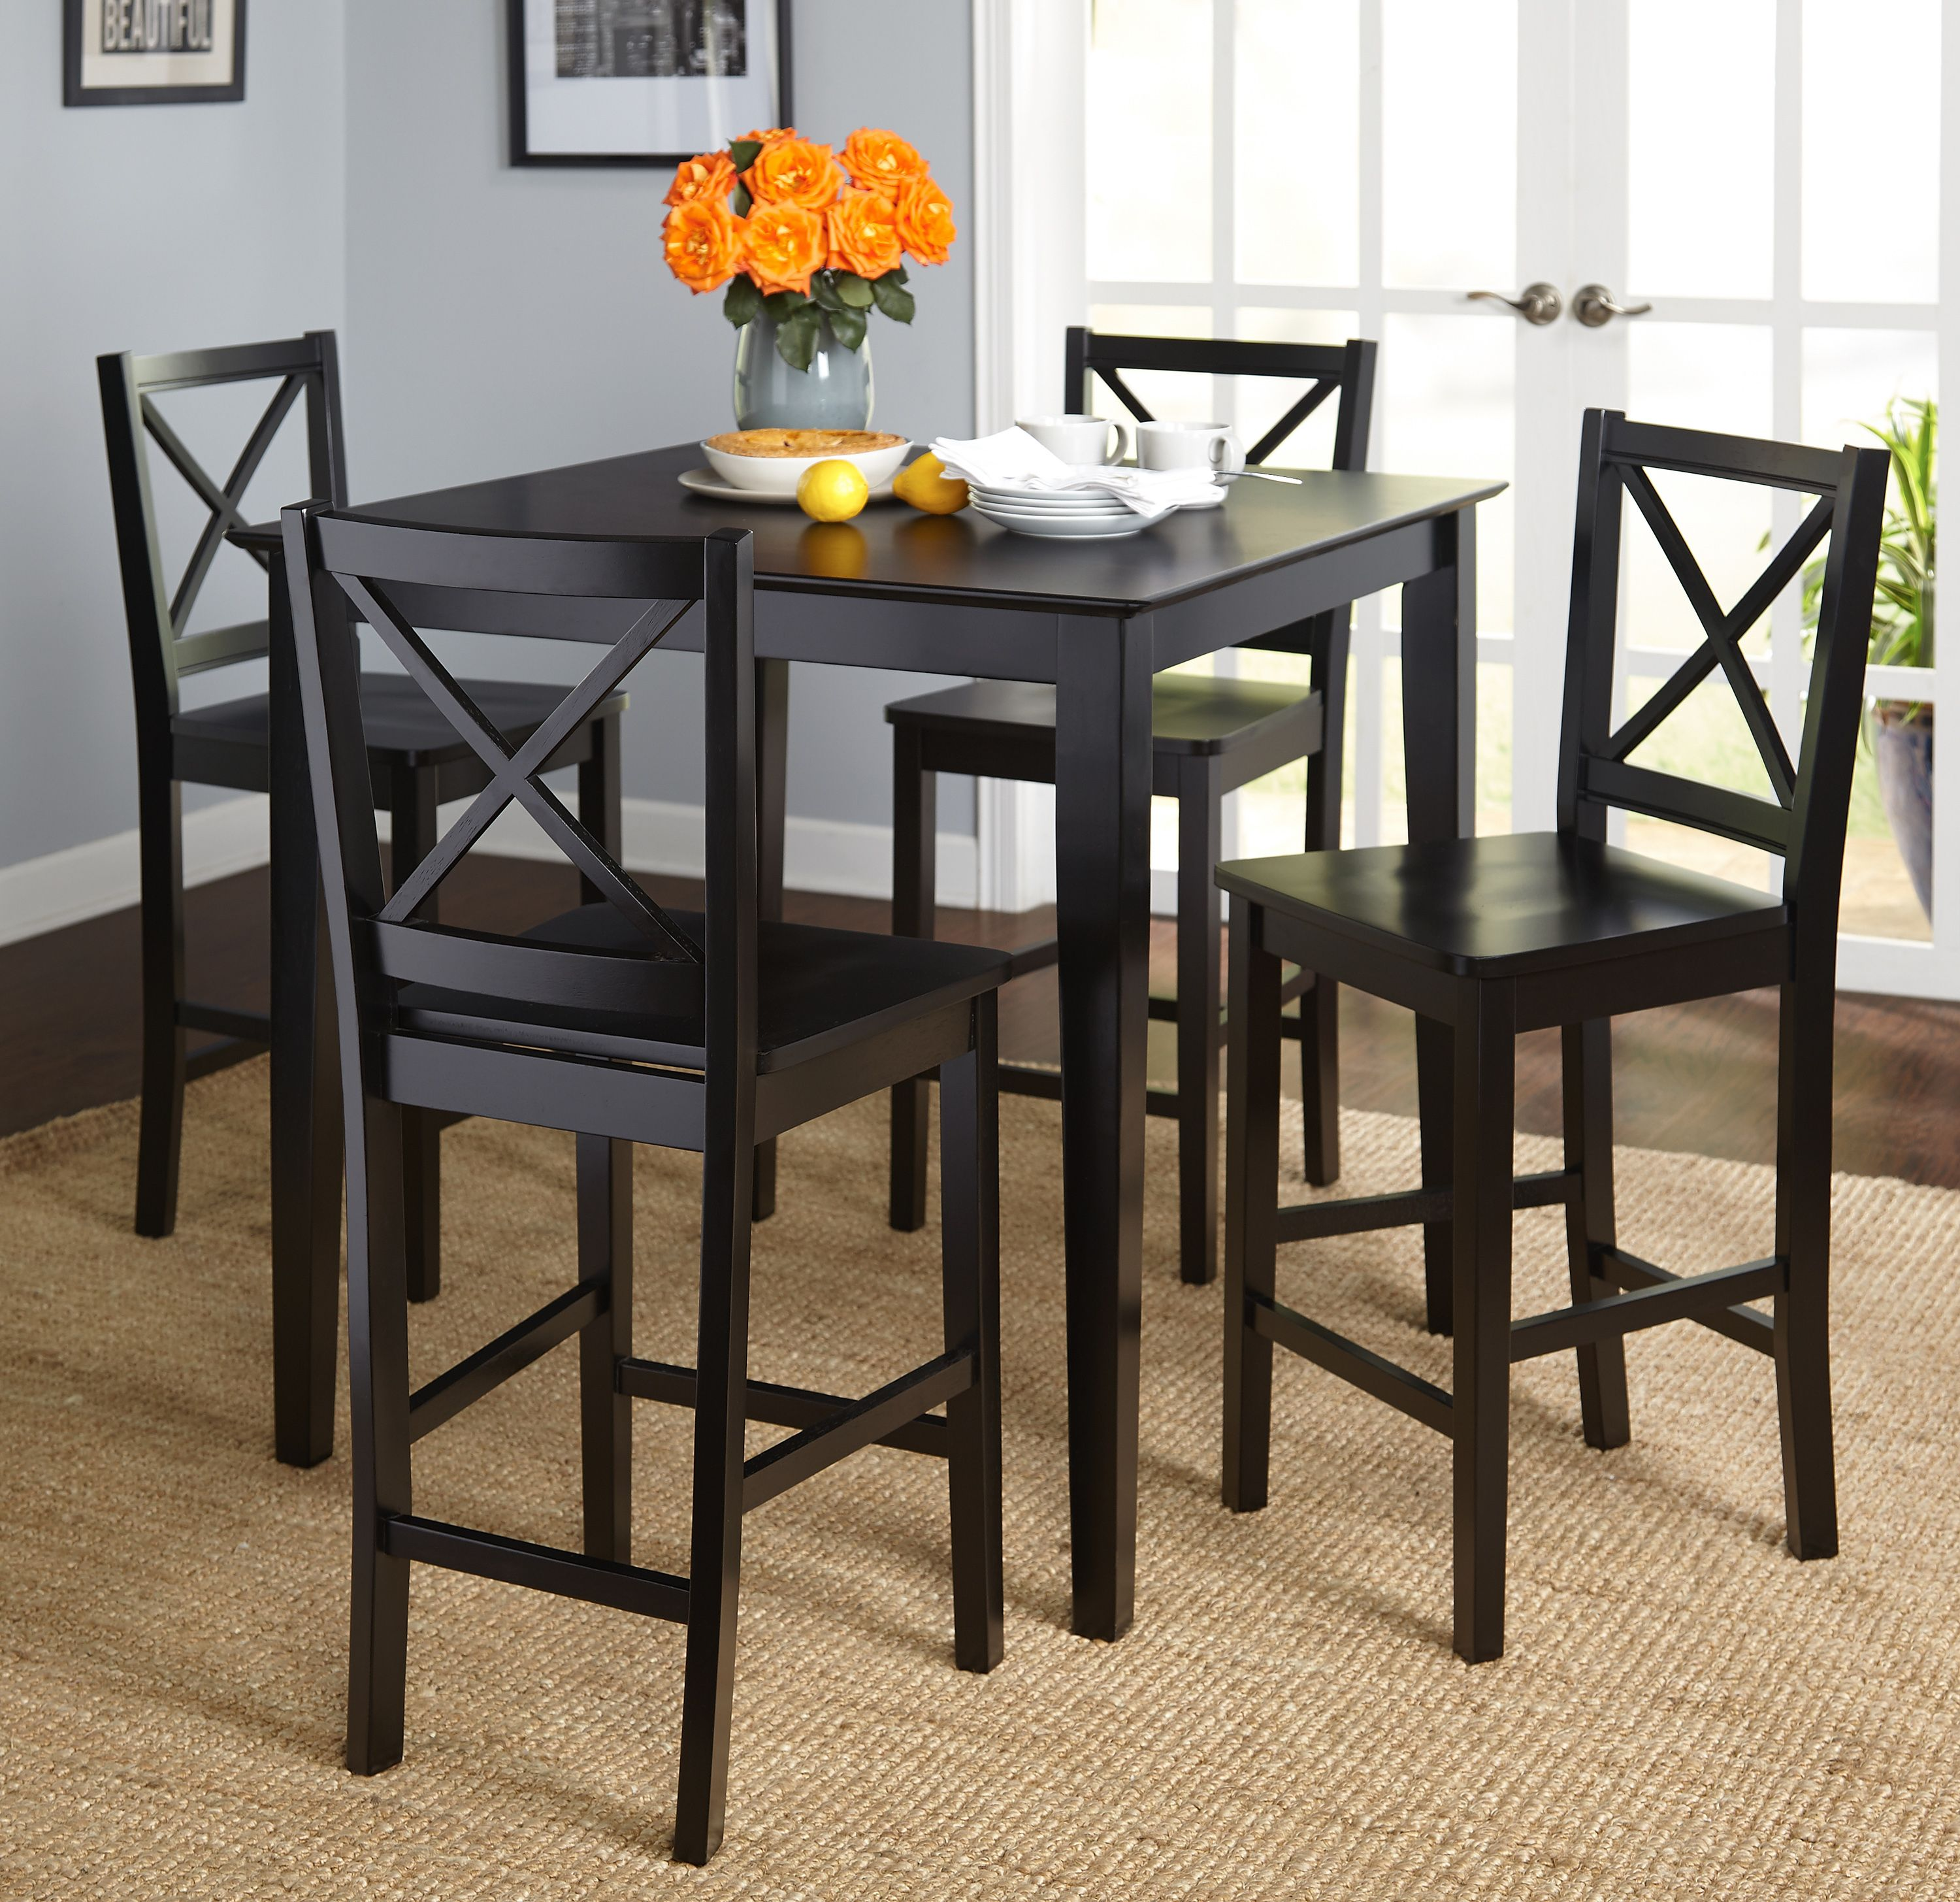 Home Dining Room Bar Counter Height Dining Sets Table And Chairs